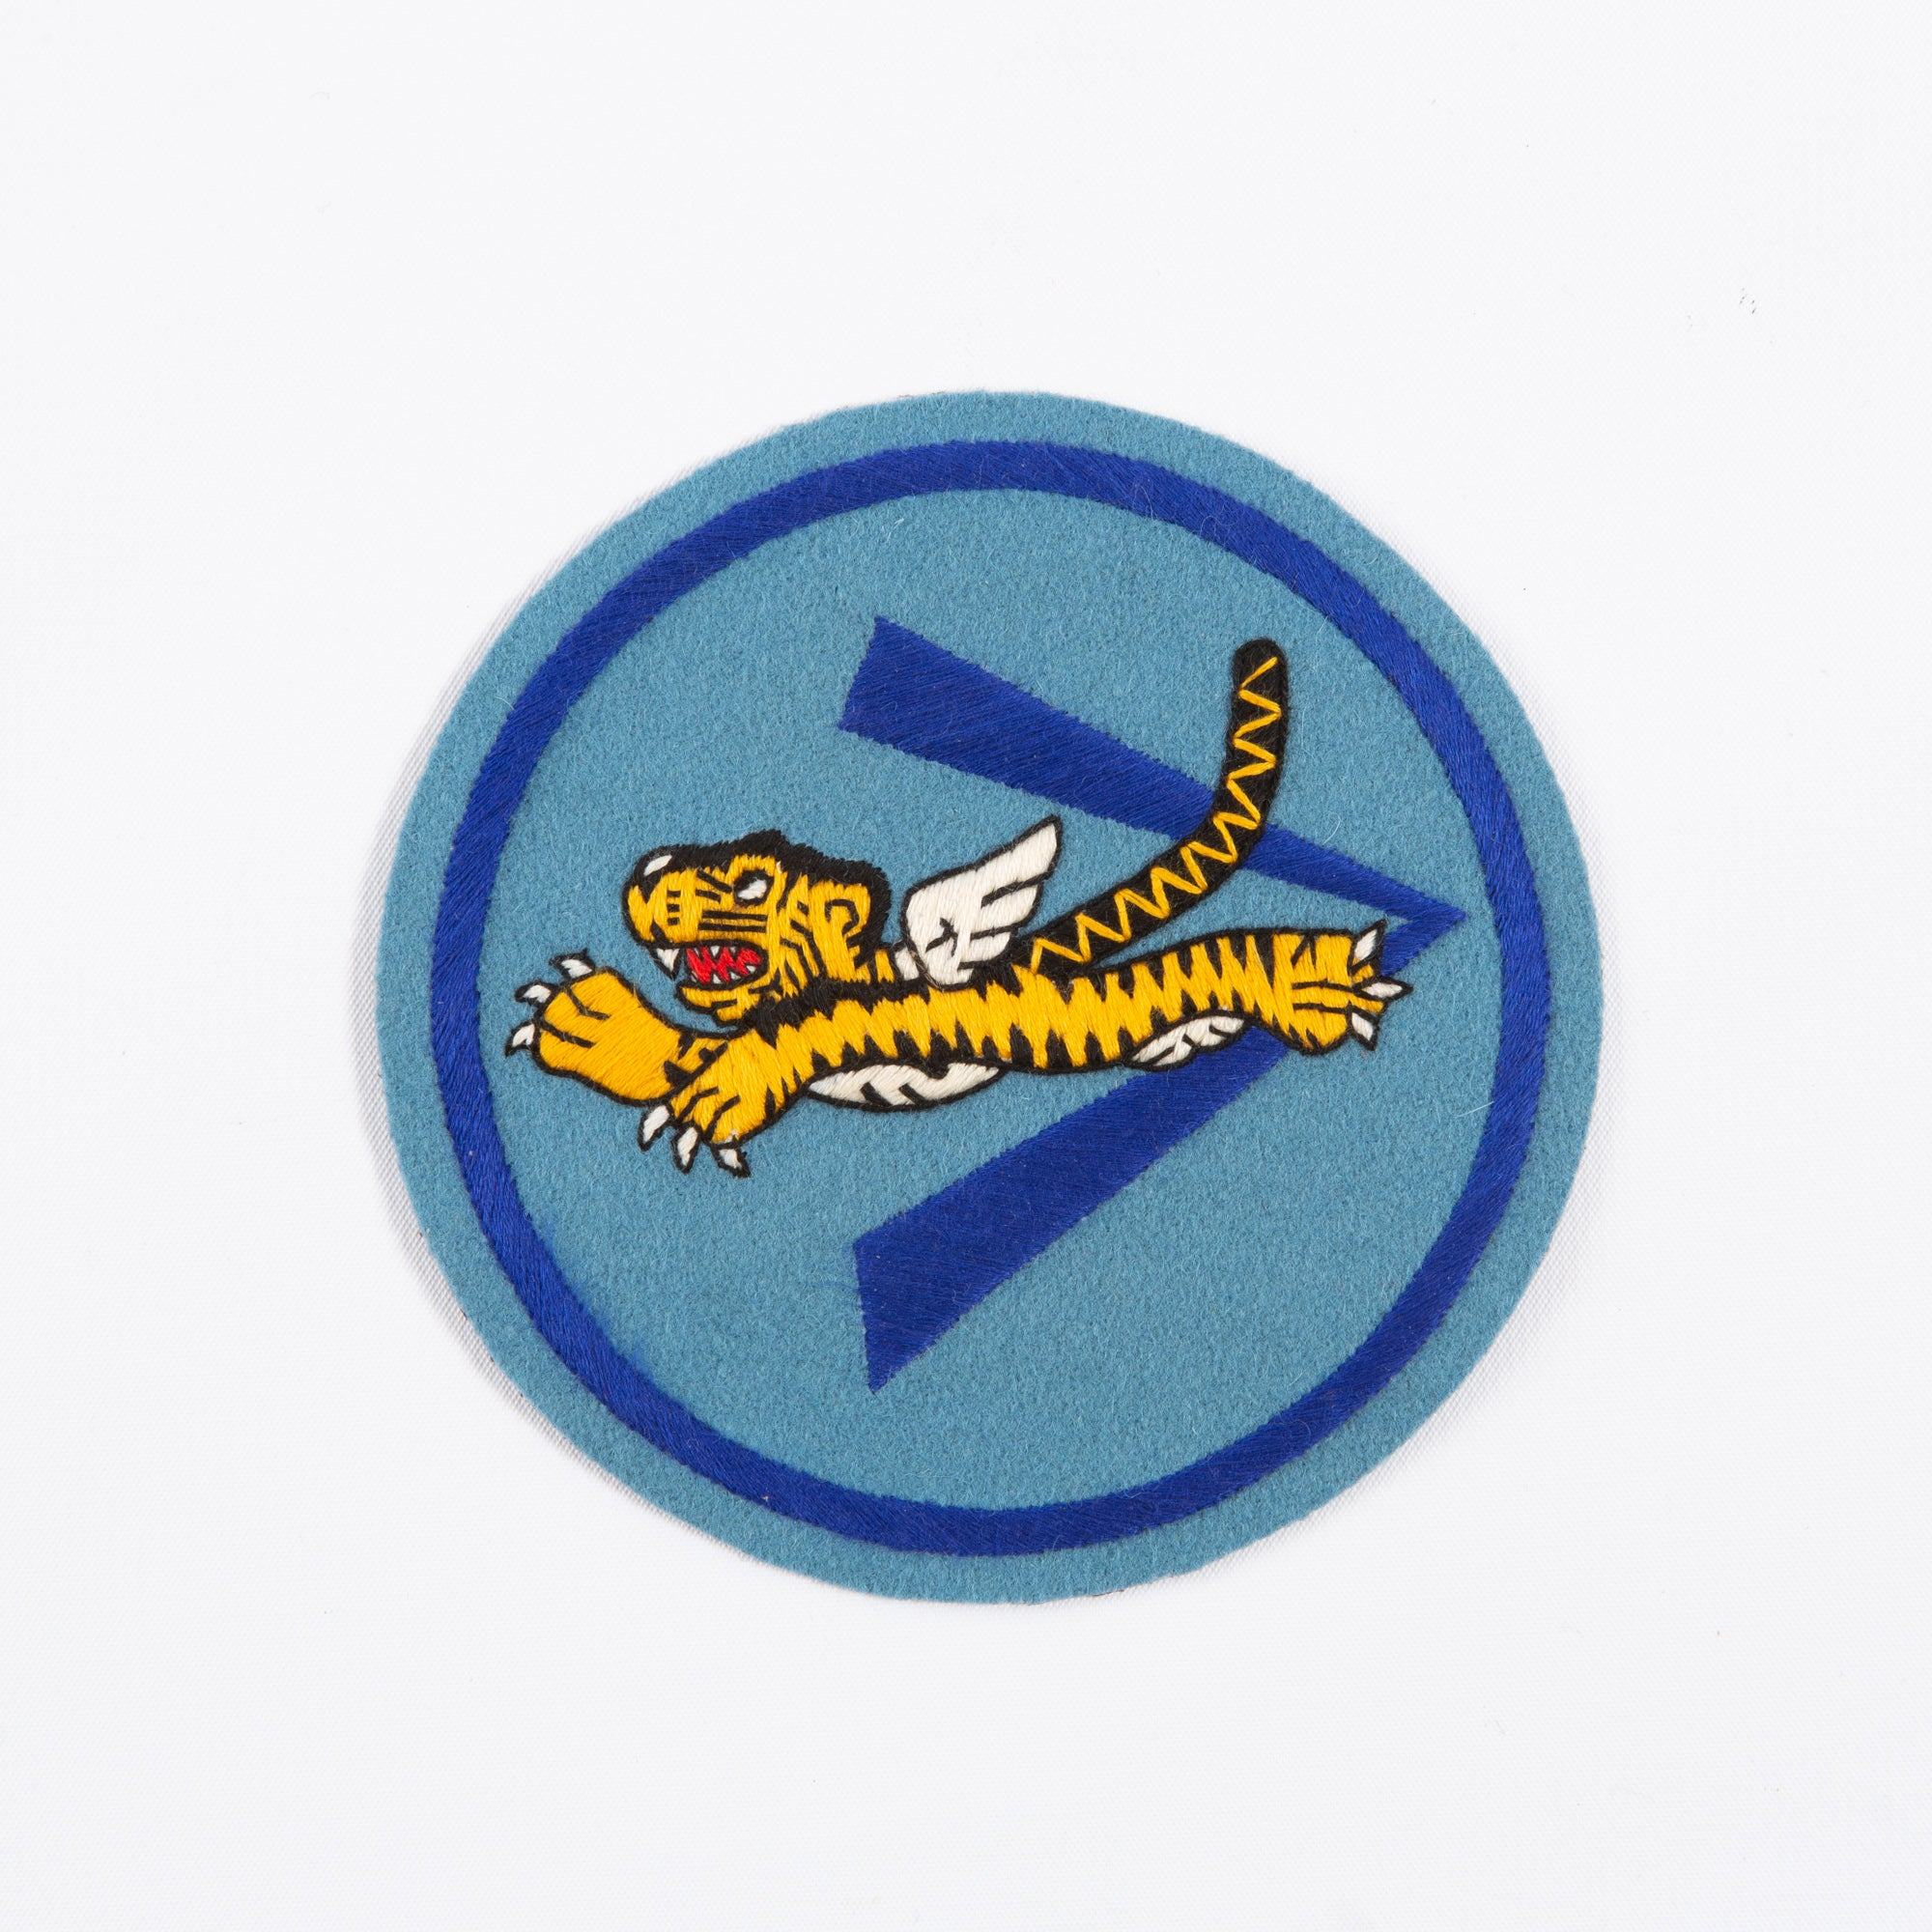 USAAF Squadron Patch - Flying Tiger AVG